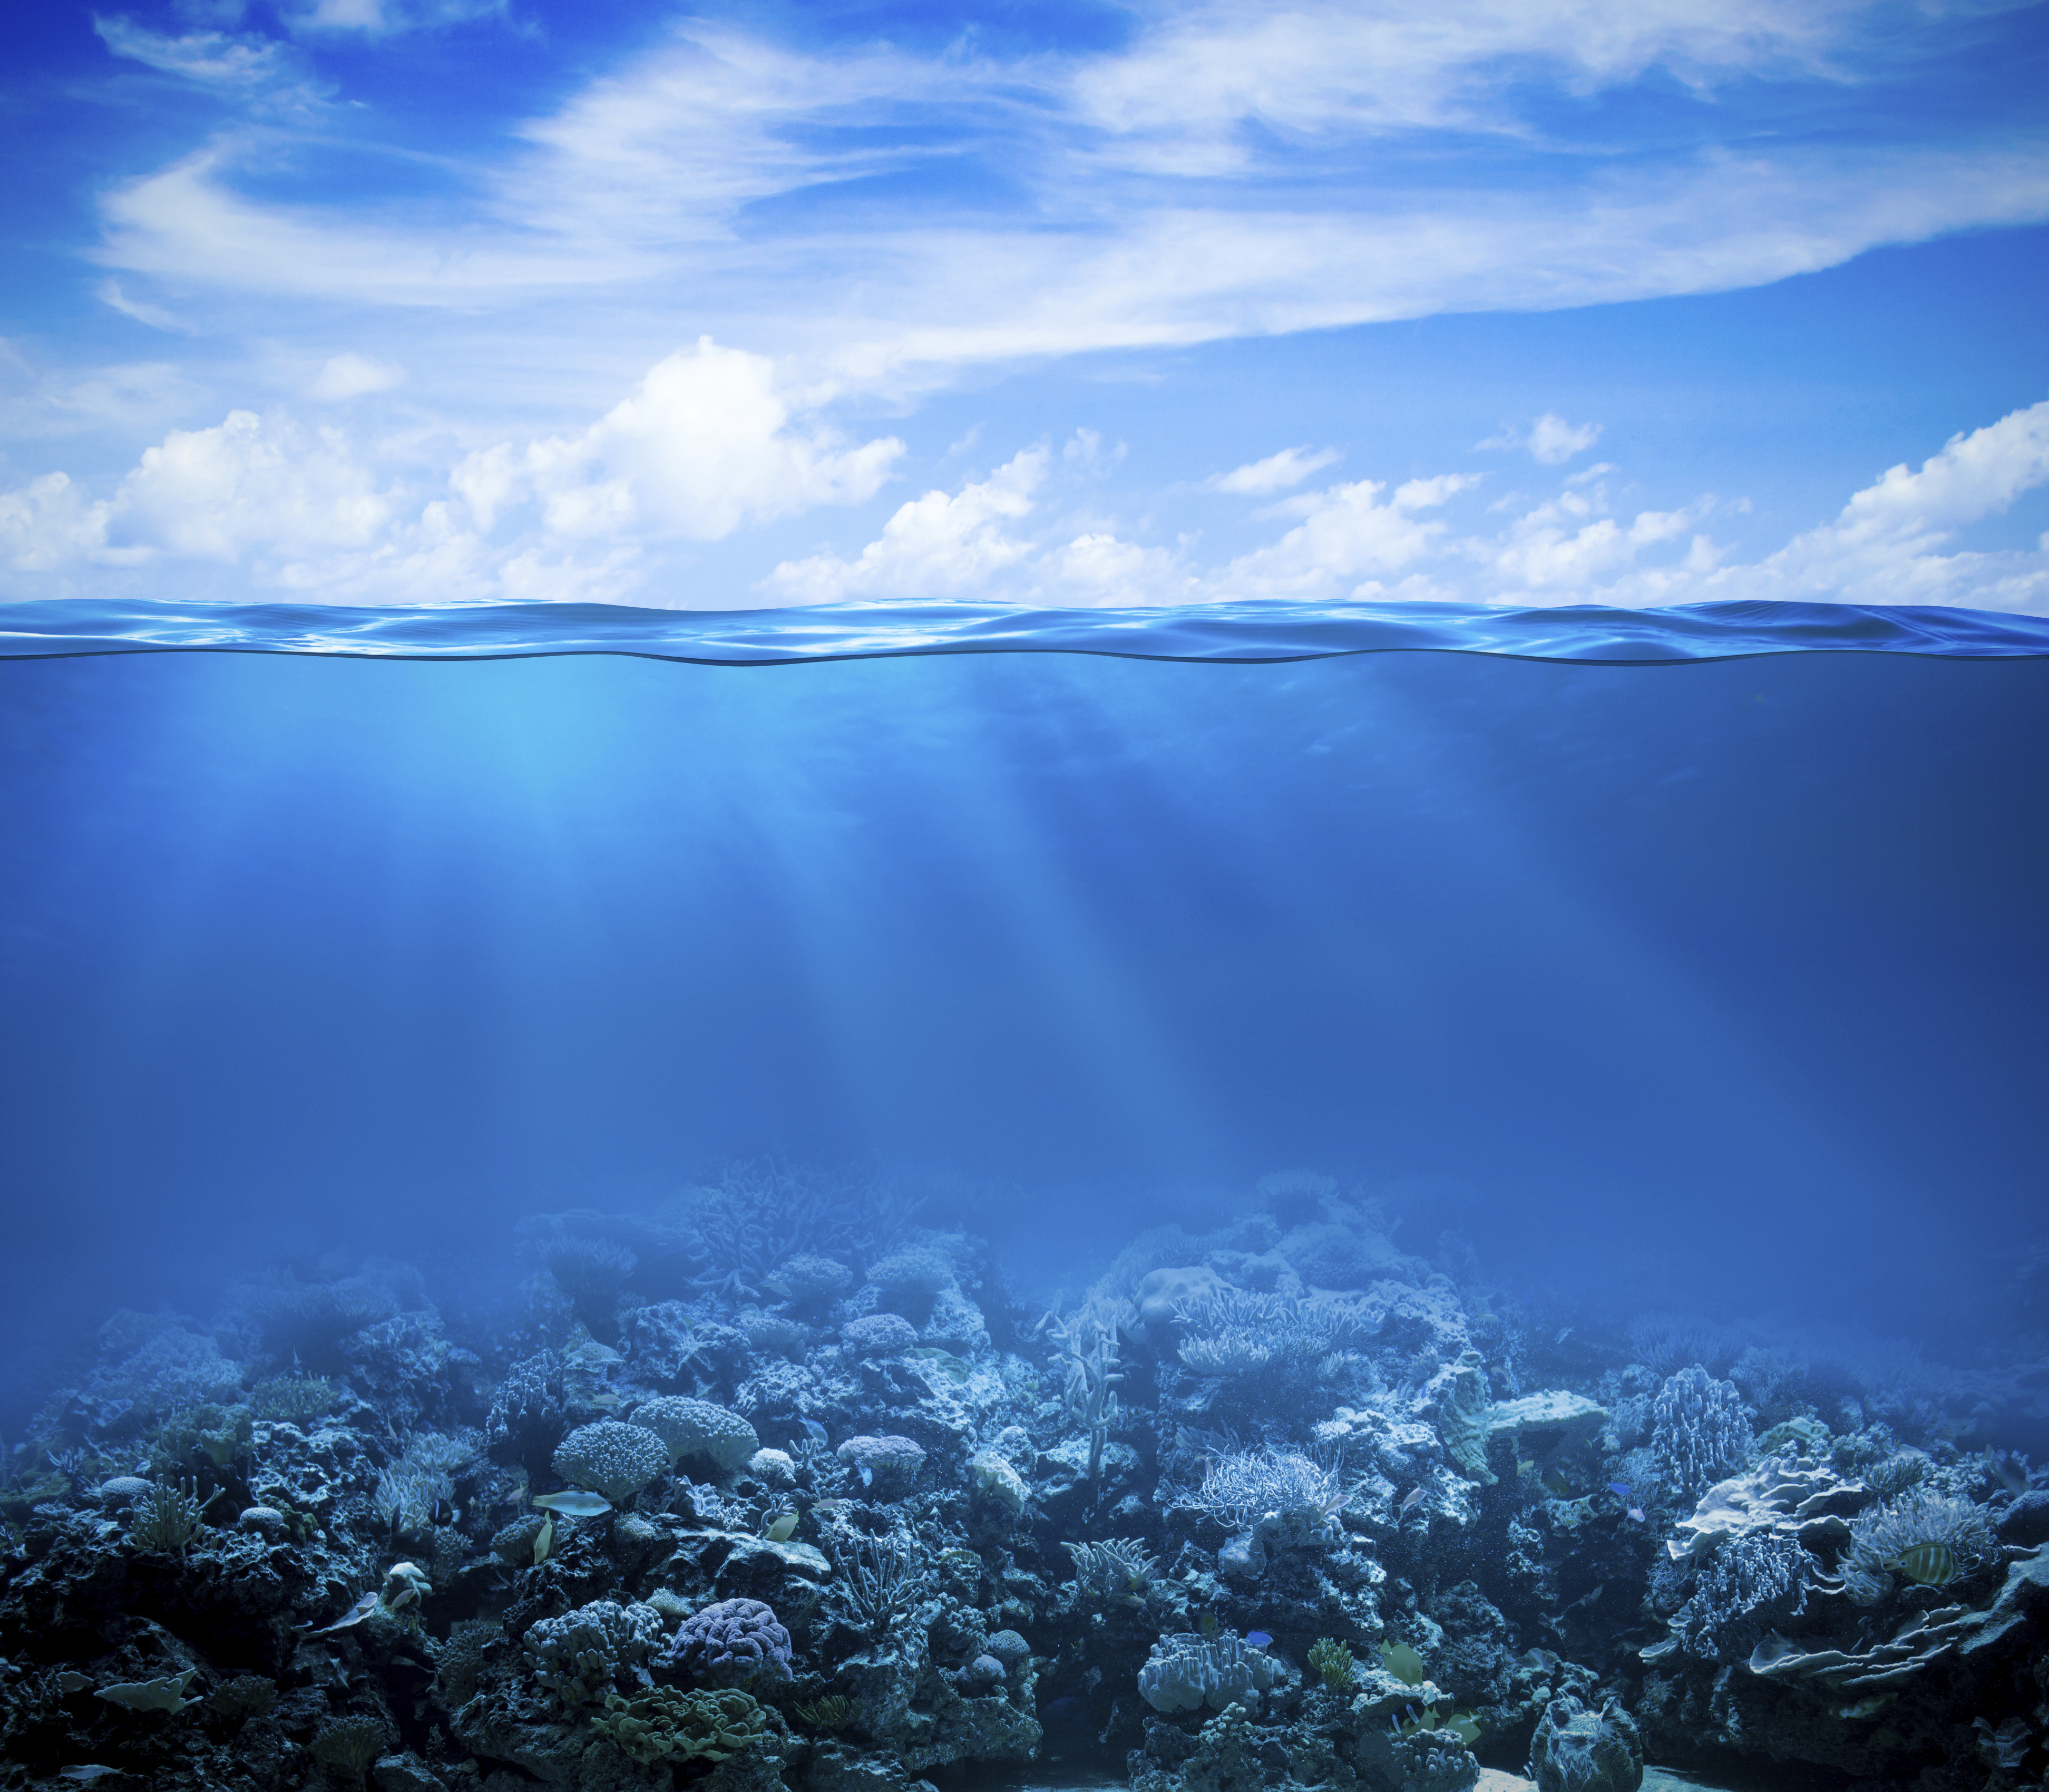 Coral Reef Under The Sea 4k Ultra HD Wallpaper